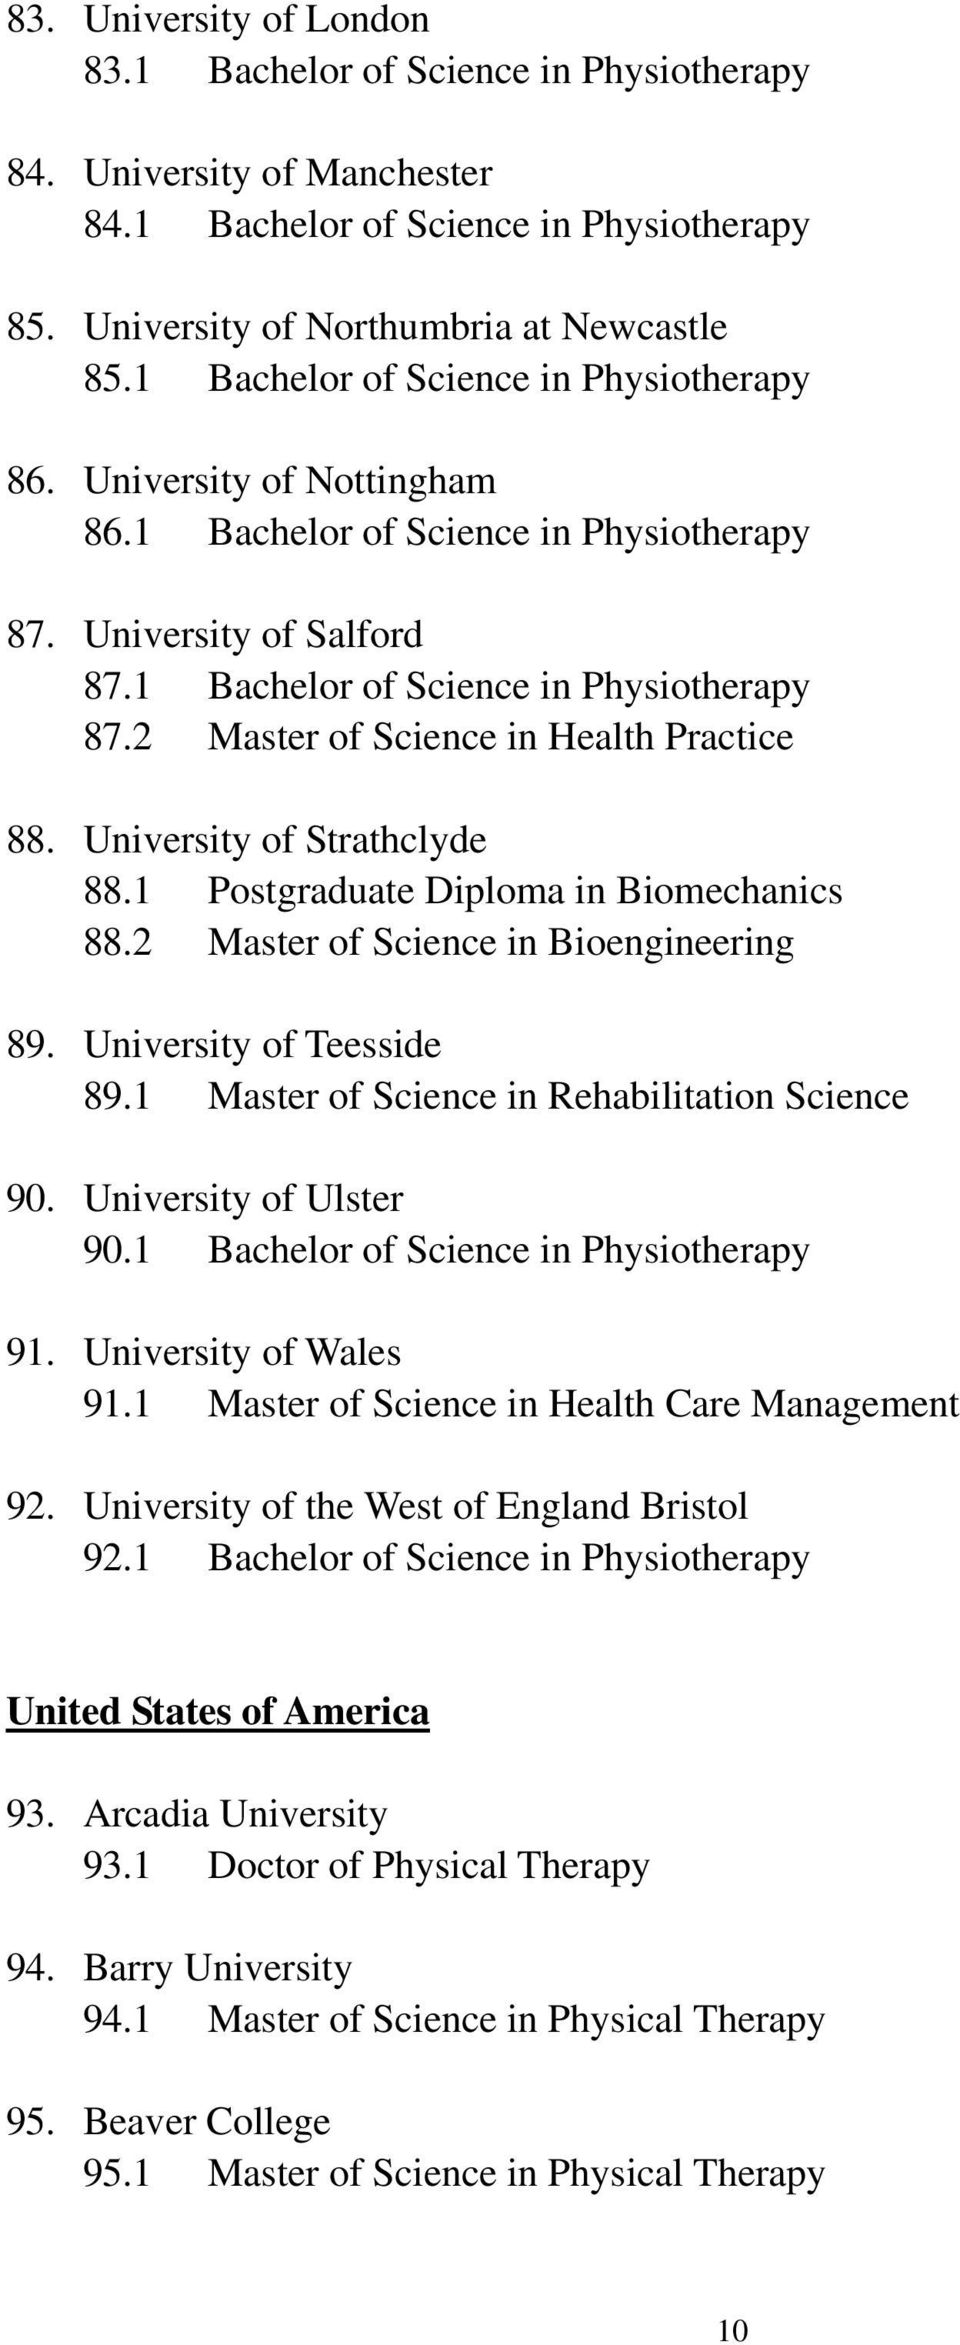 University of Strathclyde 88.1 Postgraduate Diploma in Biomechanics 88.2 Master of Science in Bioengineering 89. University of Teesside 89.1 Master of Science in Rehabilitation Science 90.